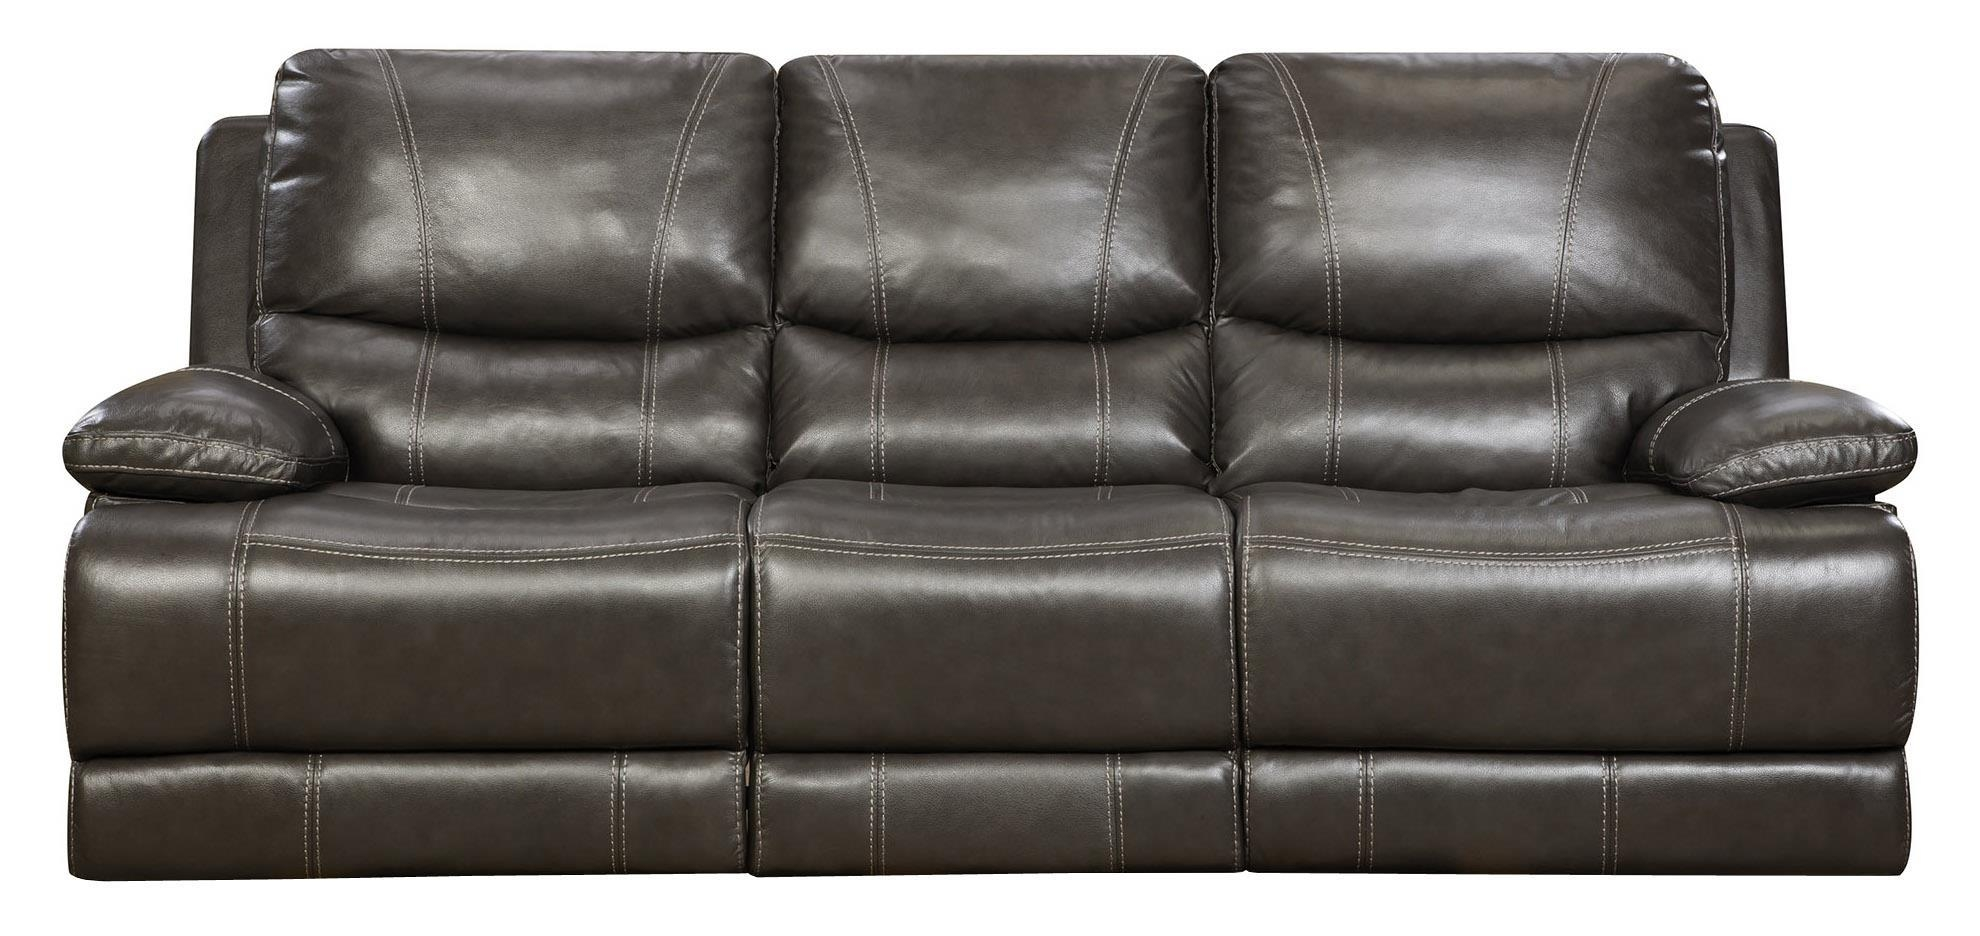 Corinthian Brooklyn Charcoal Brooklyn Charcoal Leather Reclining Regarding Corinthian Sofas (View 12 of 20)